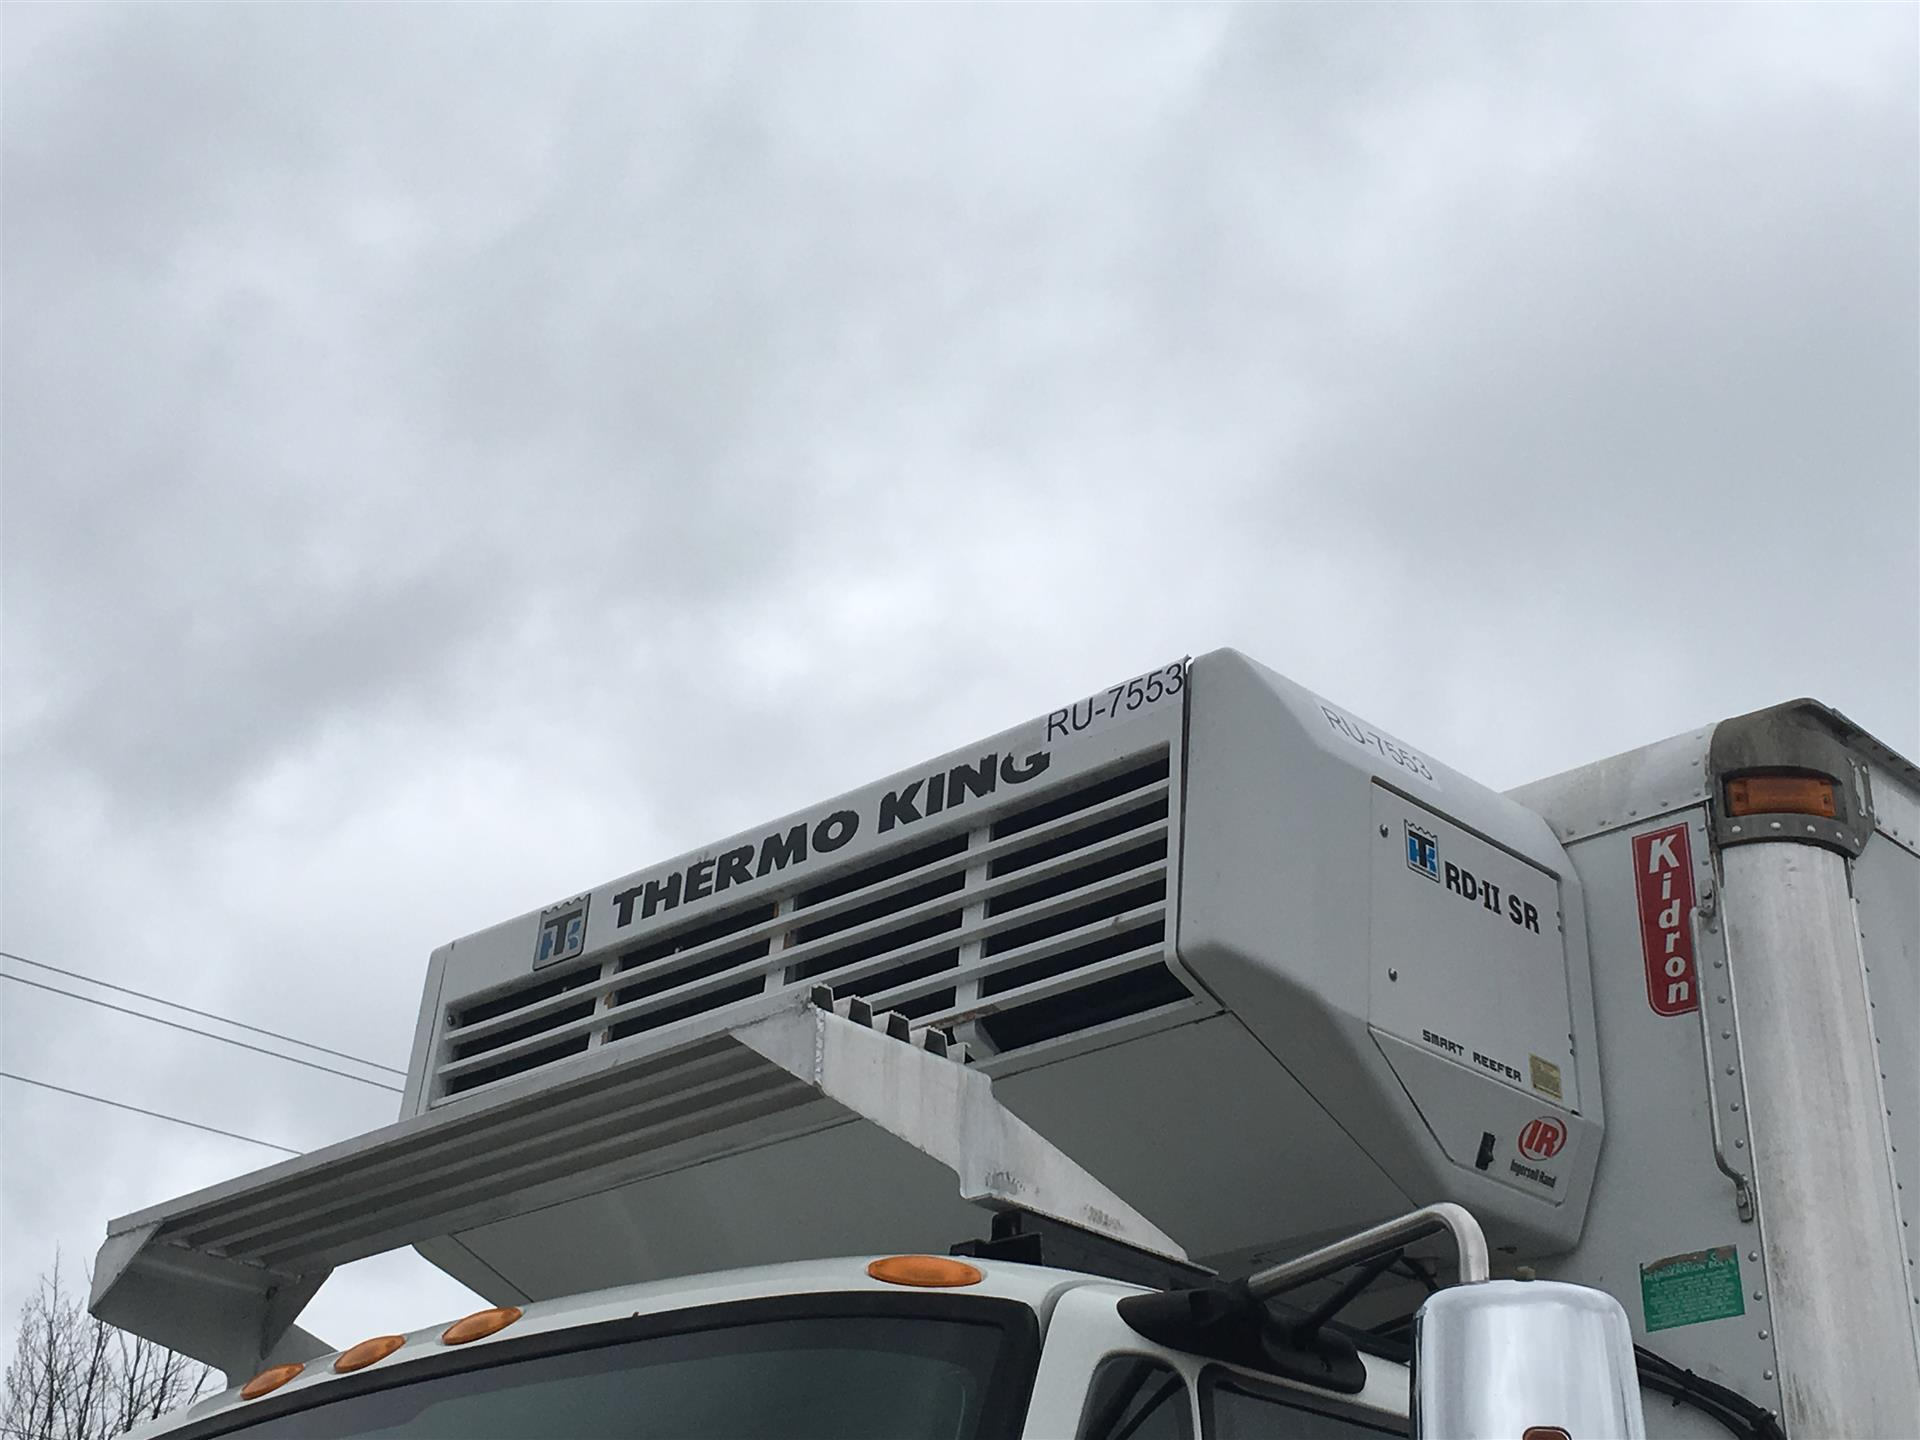 2009 Thermo King RD-II SR